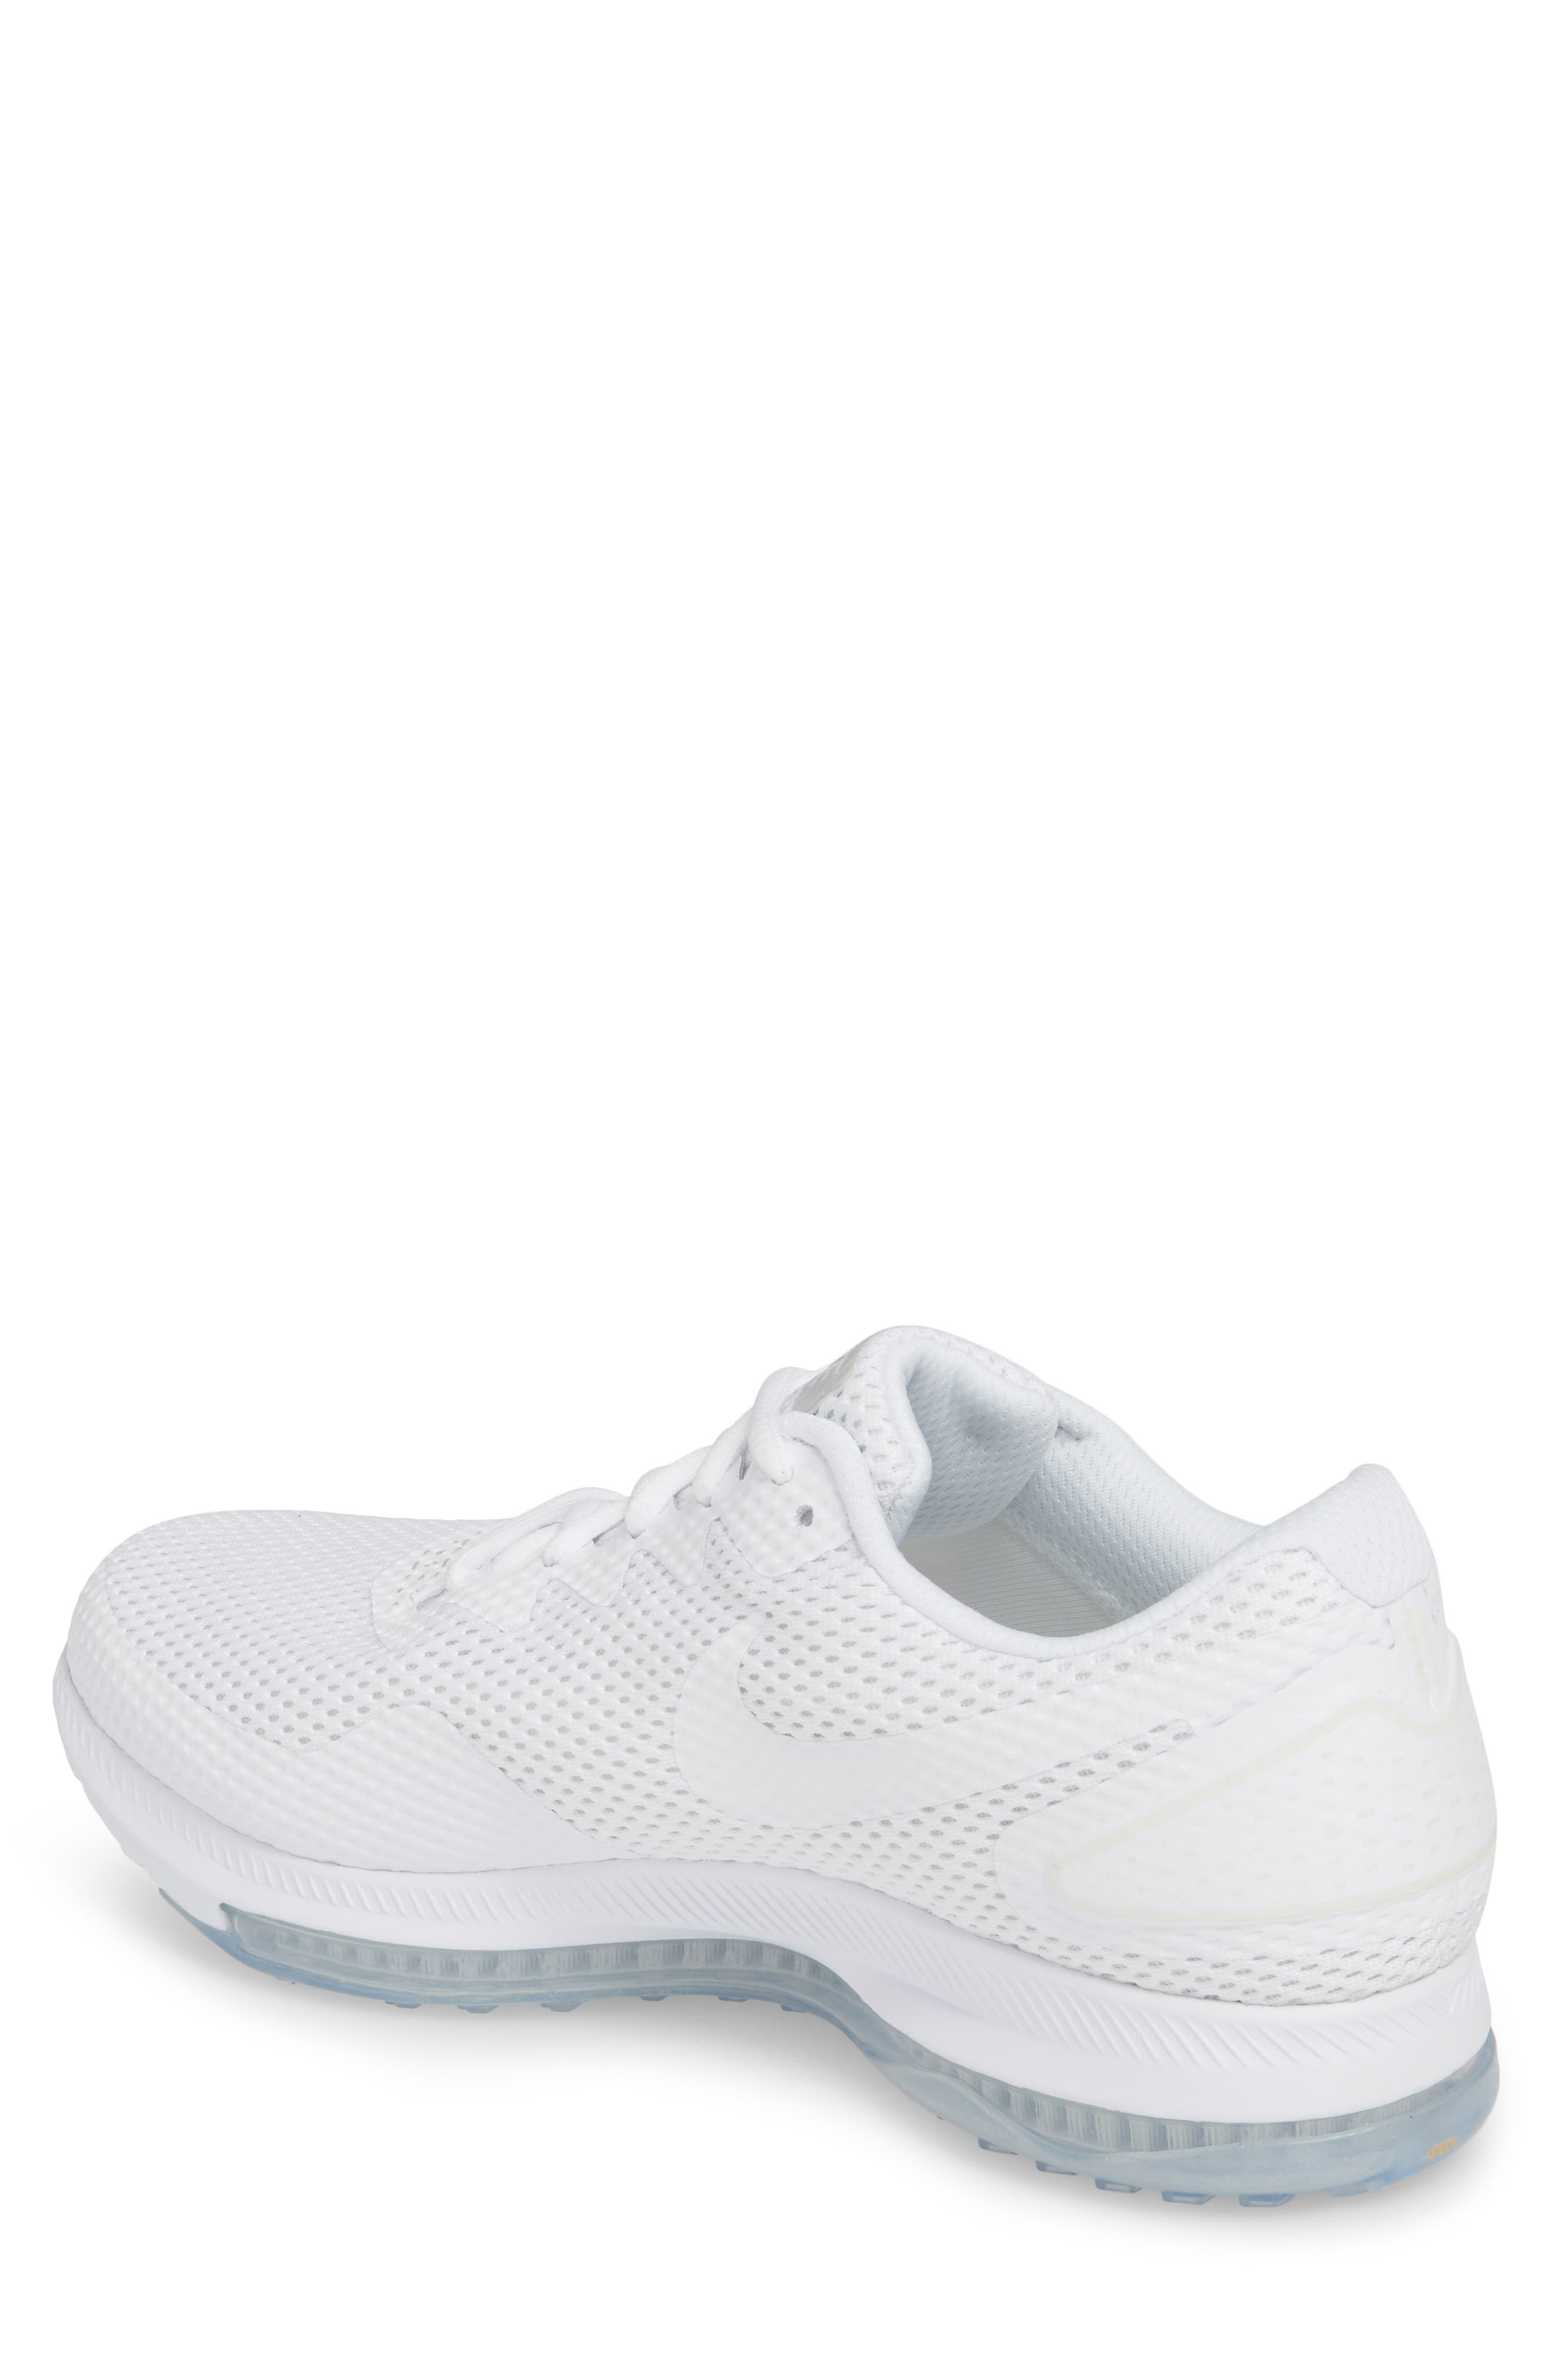 Zoom All Out Low 2 Running Shoe,                             Alternate thumbnail 2, color,                             White/ White/ Off White